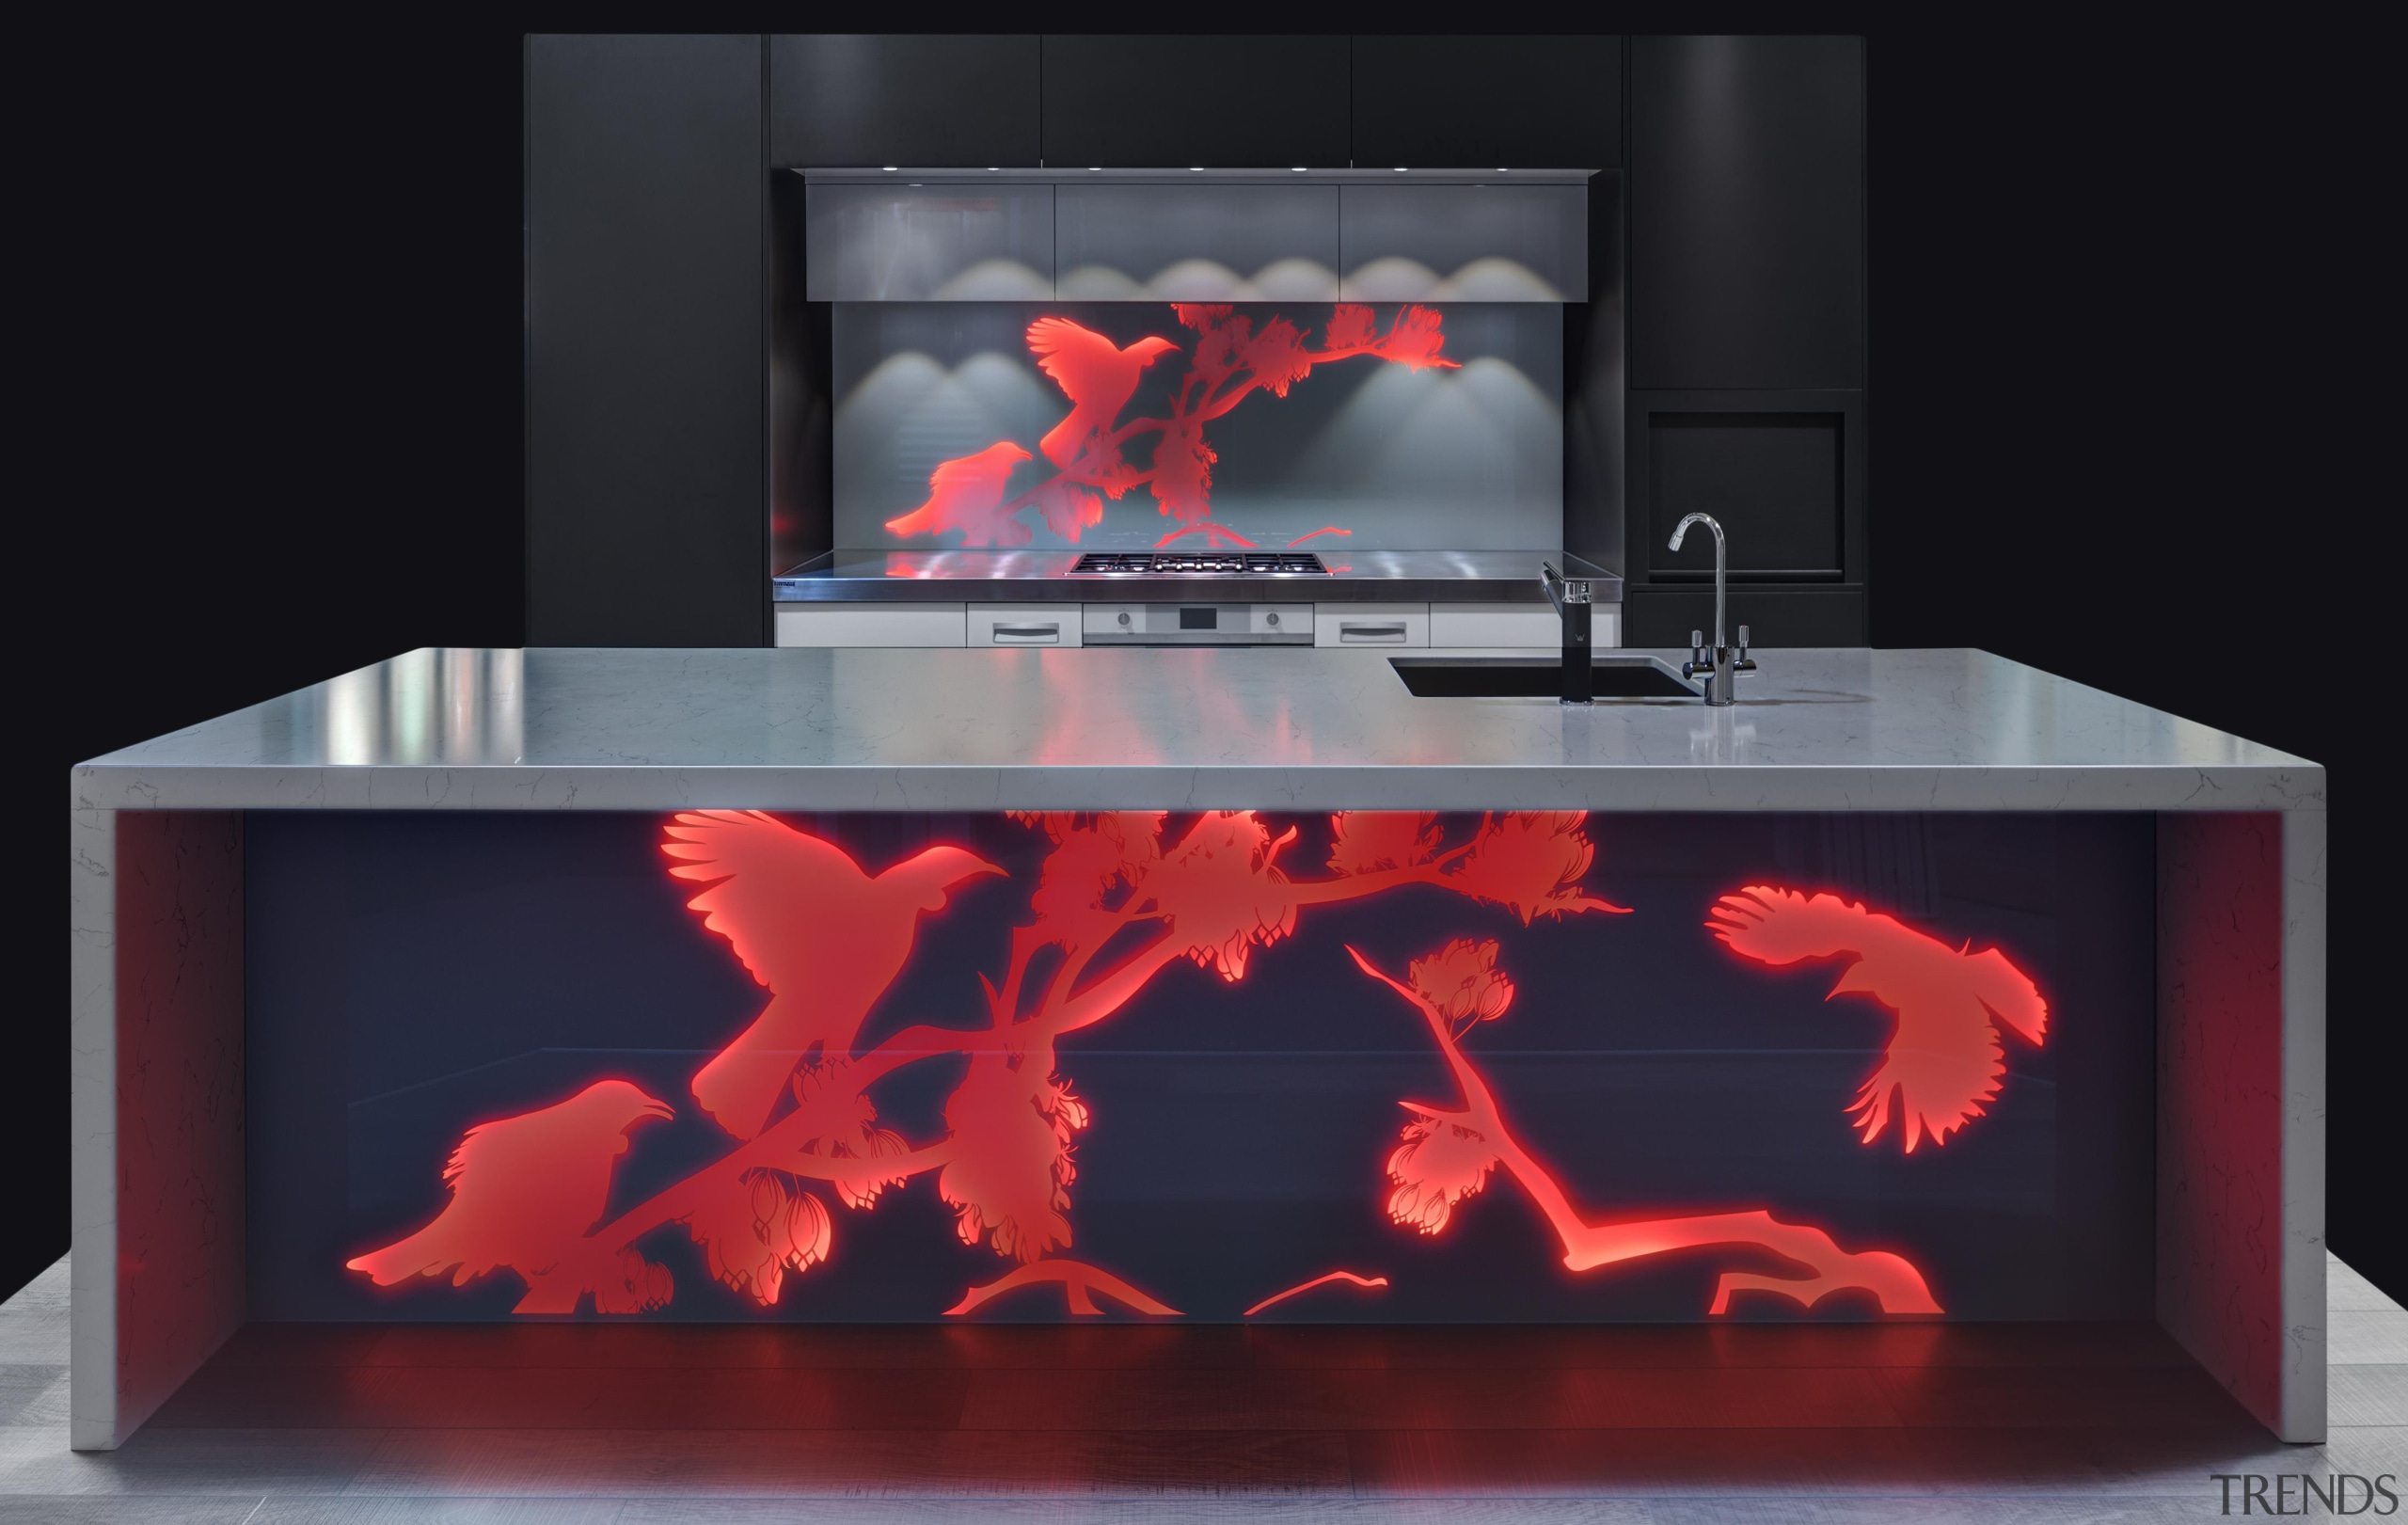 frontred.jpg - frontred.jpg - fireplace   hearth   fireplace, hearth, heat, product design, black